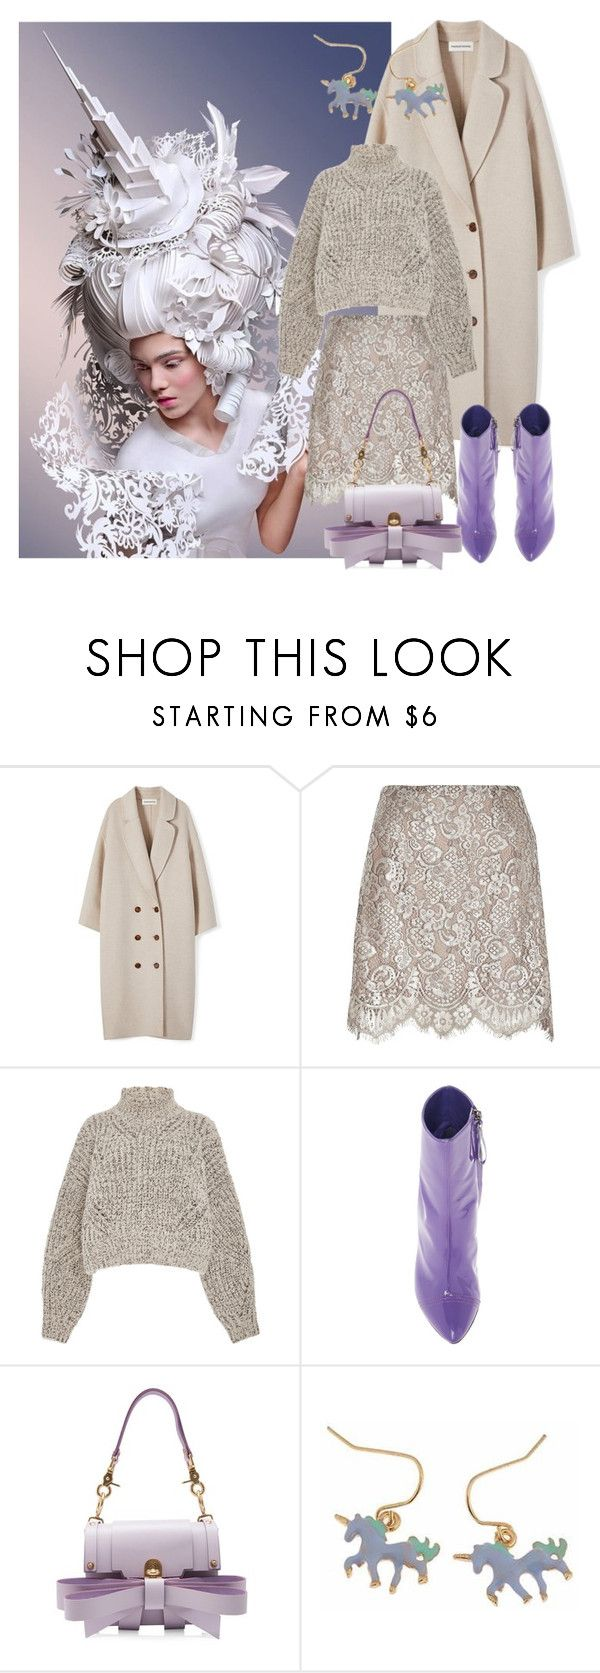 """""""Unicorn 🦄"""" by zakharova-83 ❤ liked on Polyvore featuring River Island, Isabel Marant, E L L E R Y and Niels Peeraer"""